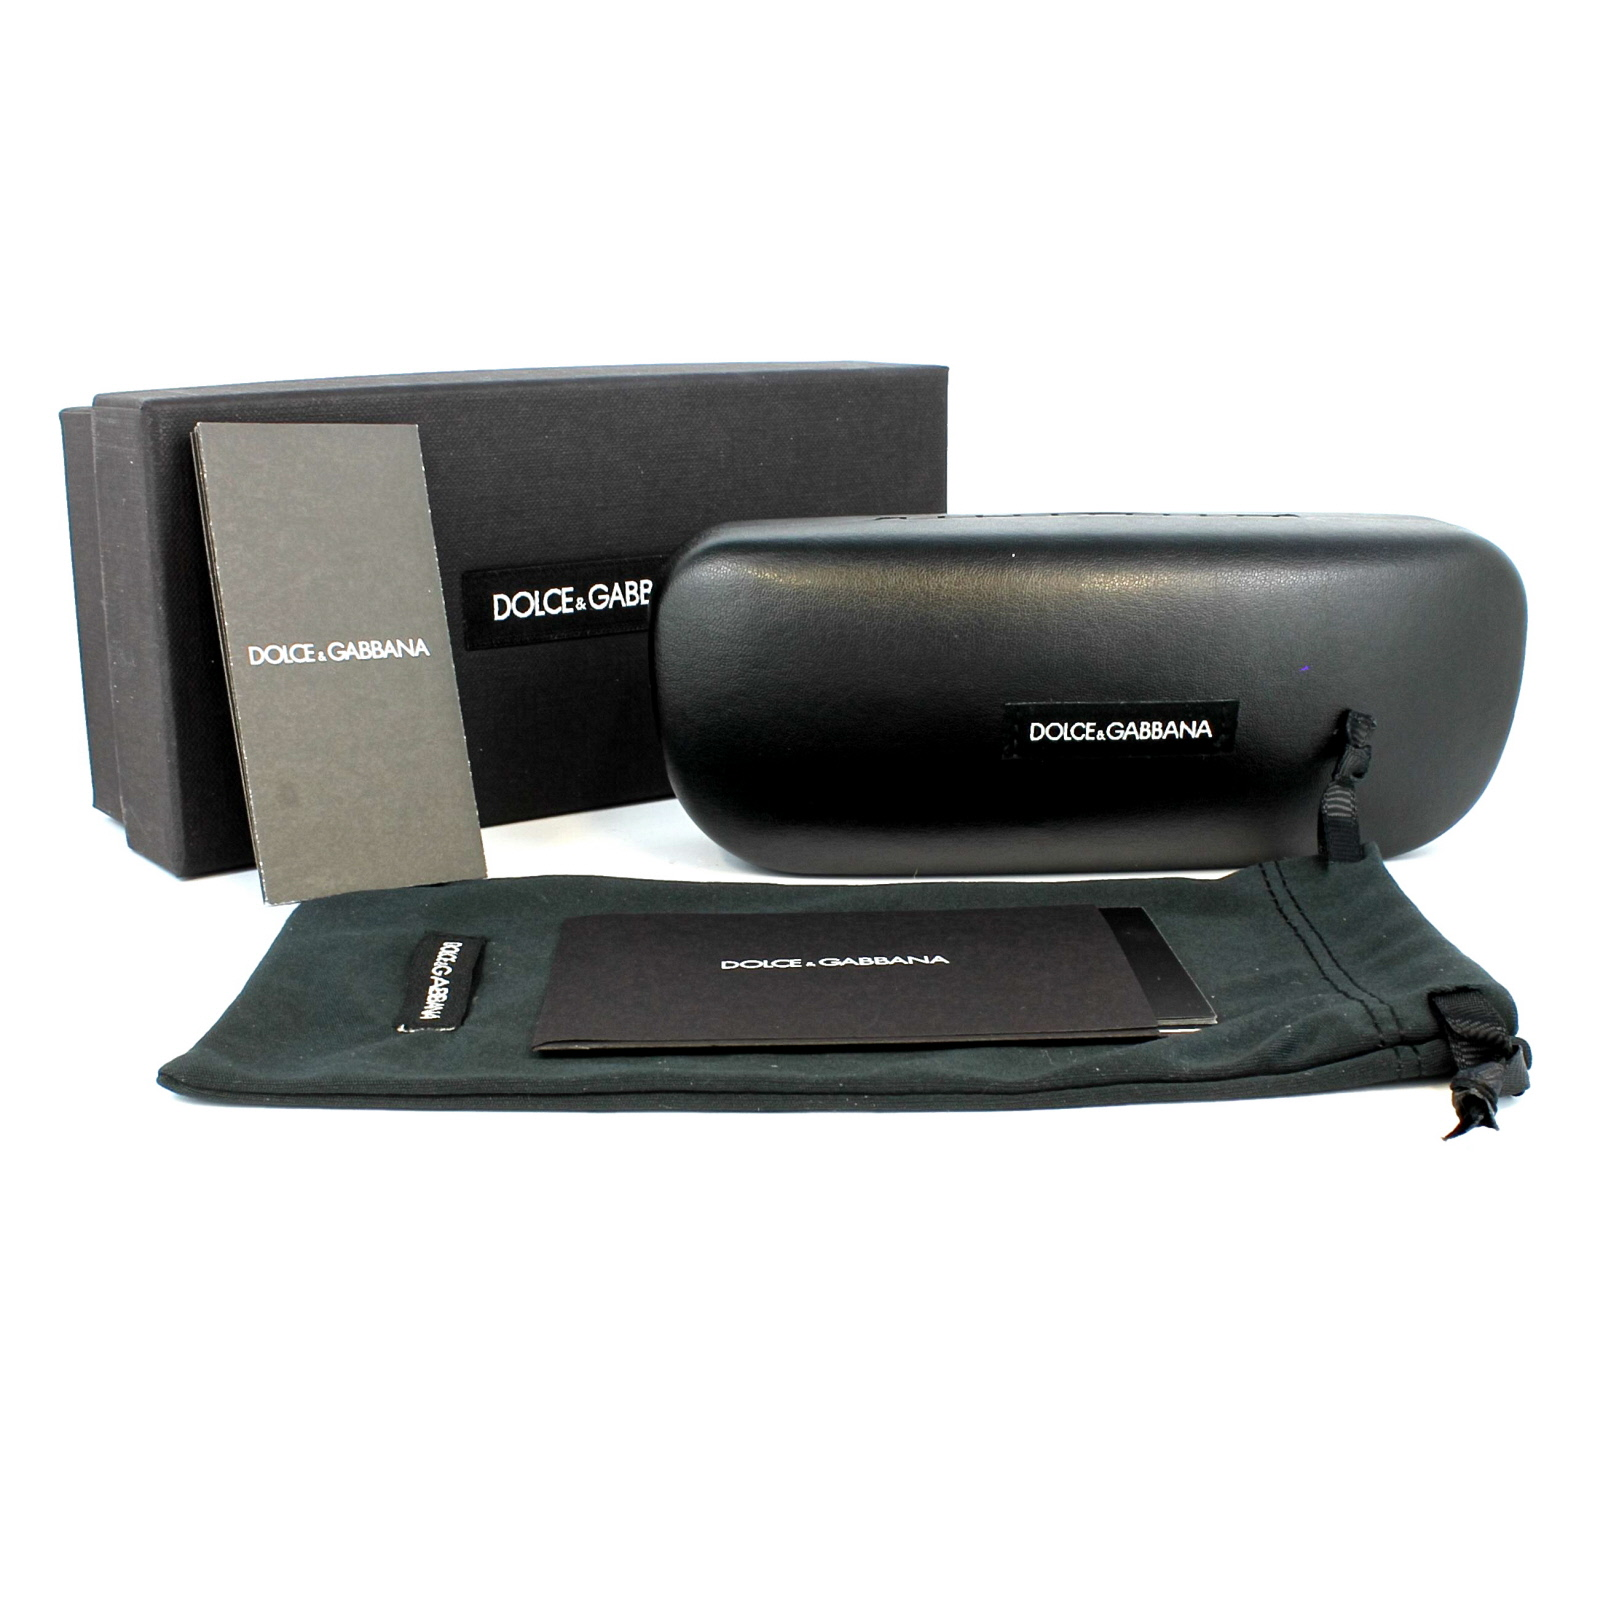 Dolce Gabbana Sunglasses Case  dolce gabbana sunglasses 6101 1934 87 matt black grey ebay